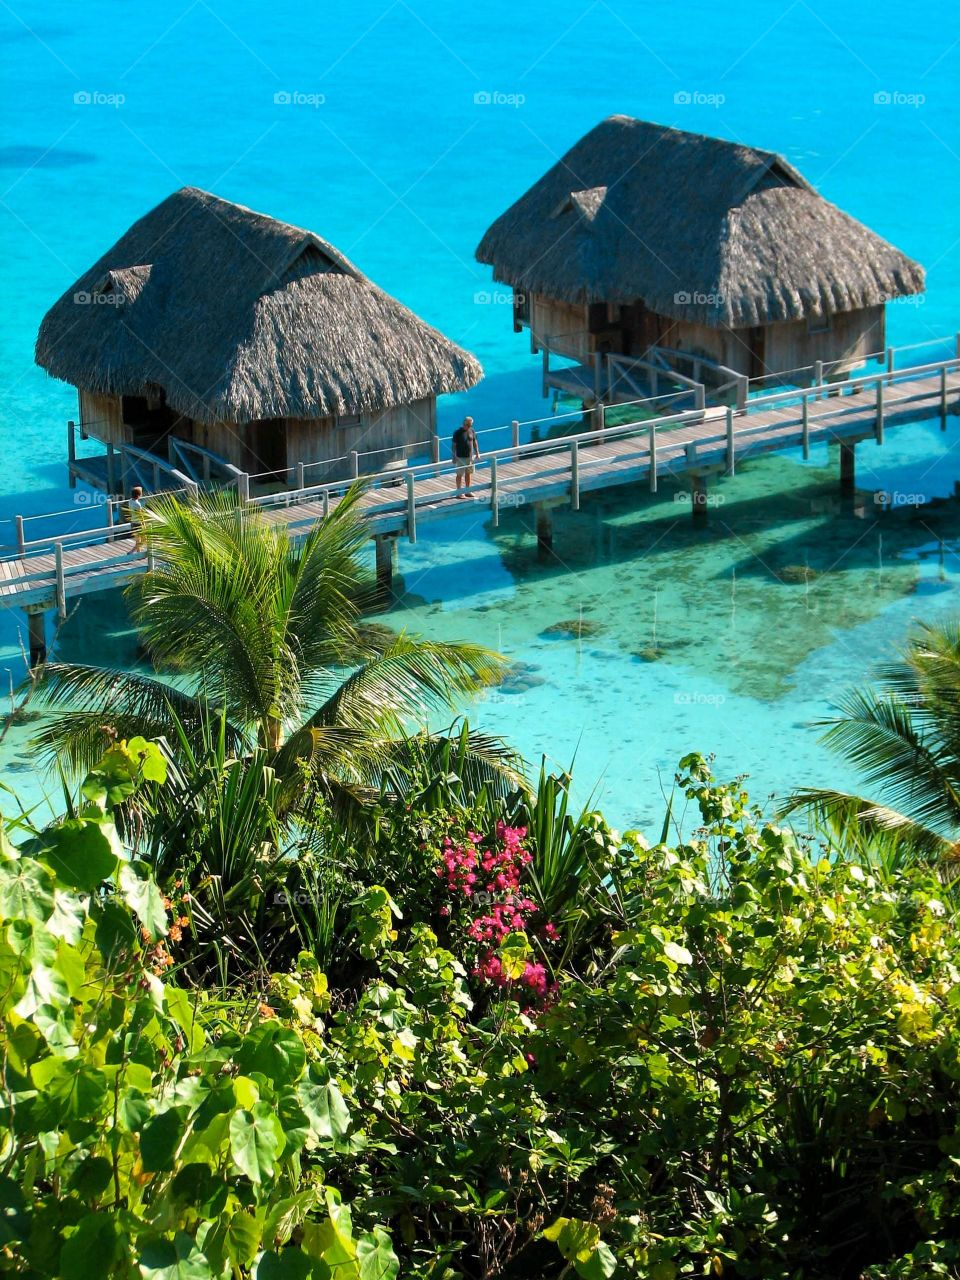 Overwater bungalows. Overwater bungalows in Bora Bora at the Sofitel Private Island, French Polynesia